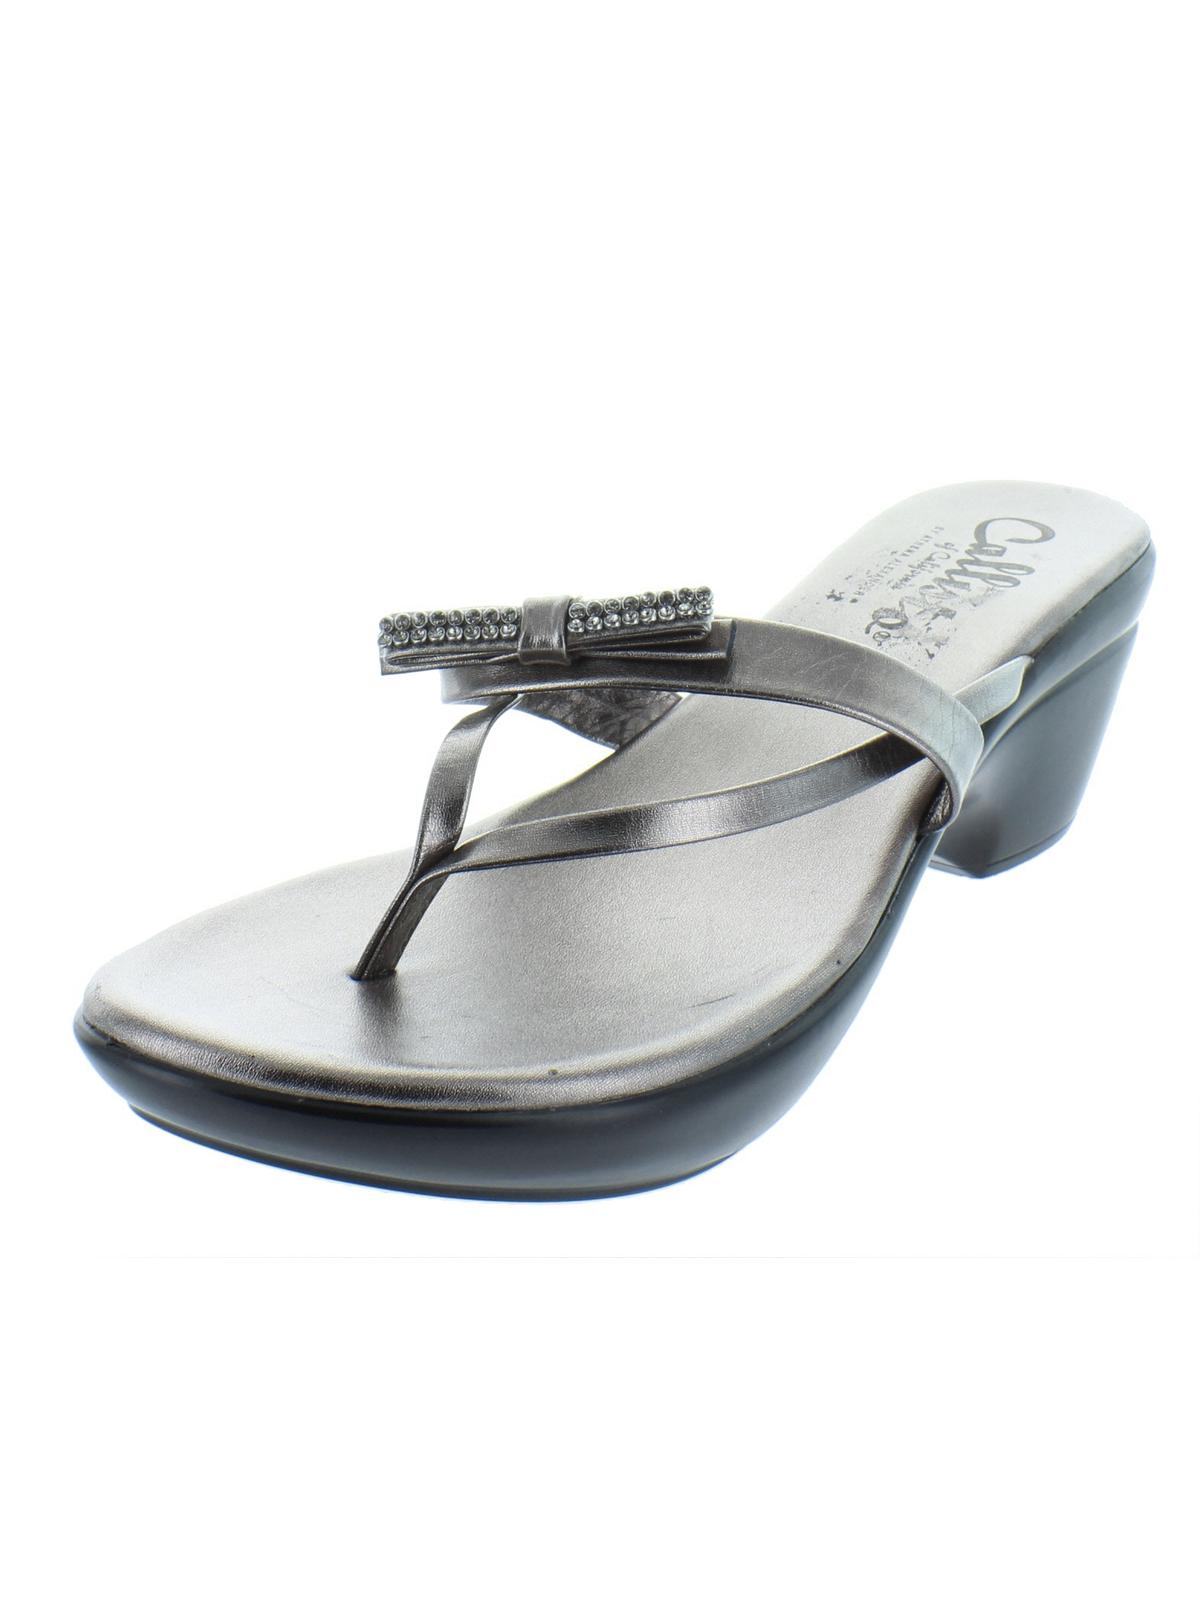 c9a6b03a0 Callisto - Callisto of California Womens Lassye Metallic Thong Wedge Sandals  - Walmart.com